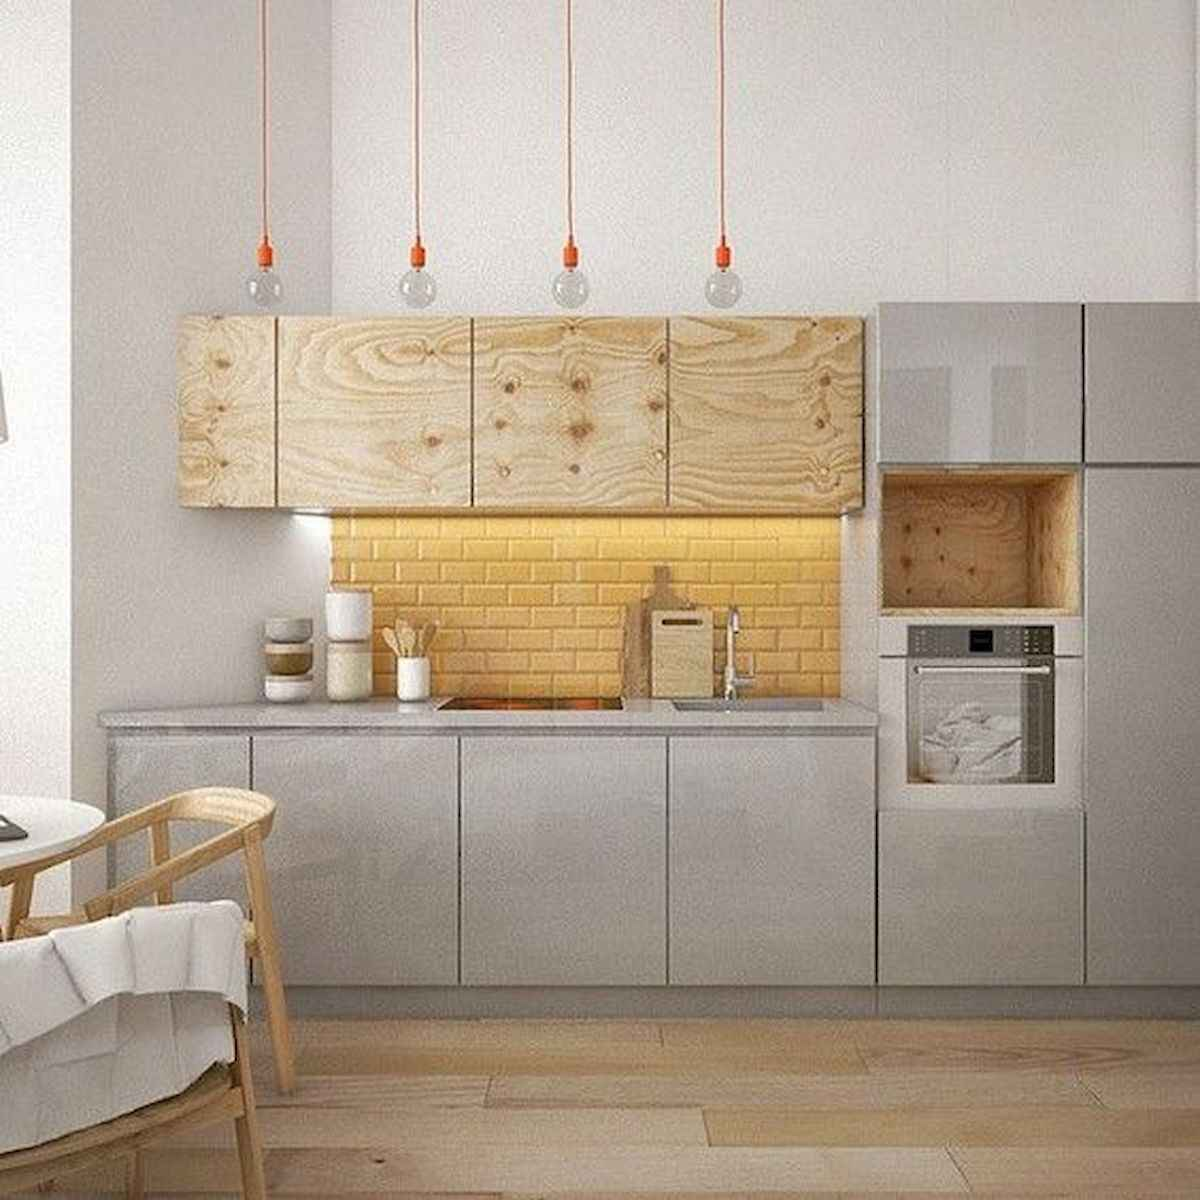 60 Lovely Painted Kitchen Cabinets Two Tone Design Ideas (26)